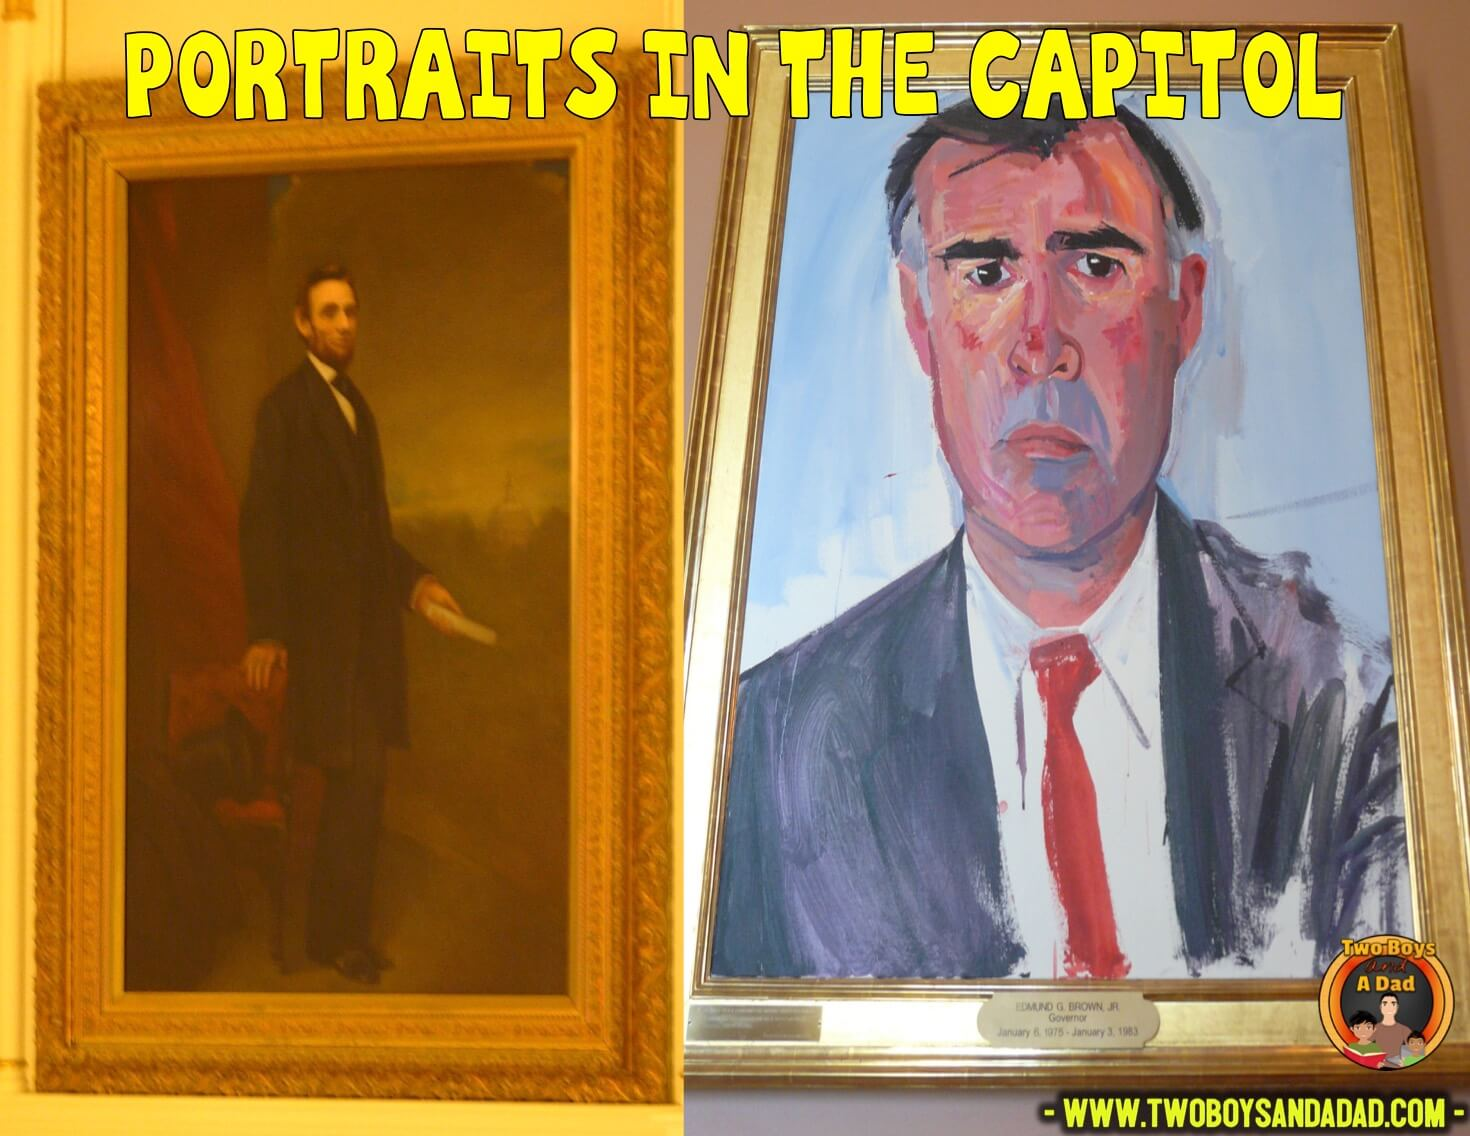 Official portraits in the Capitol